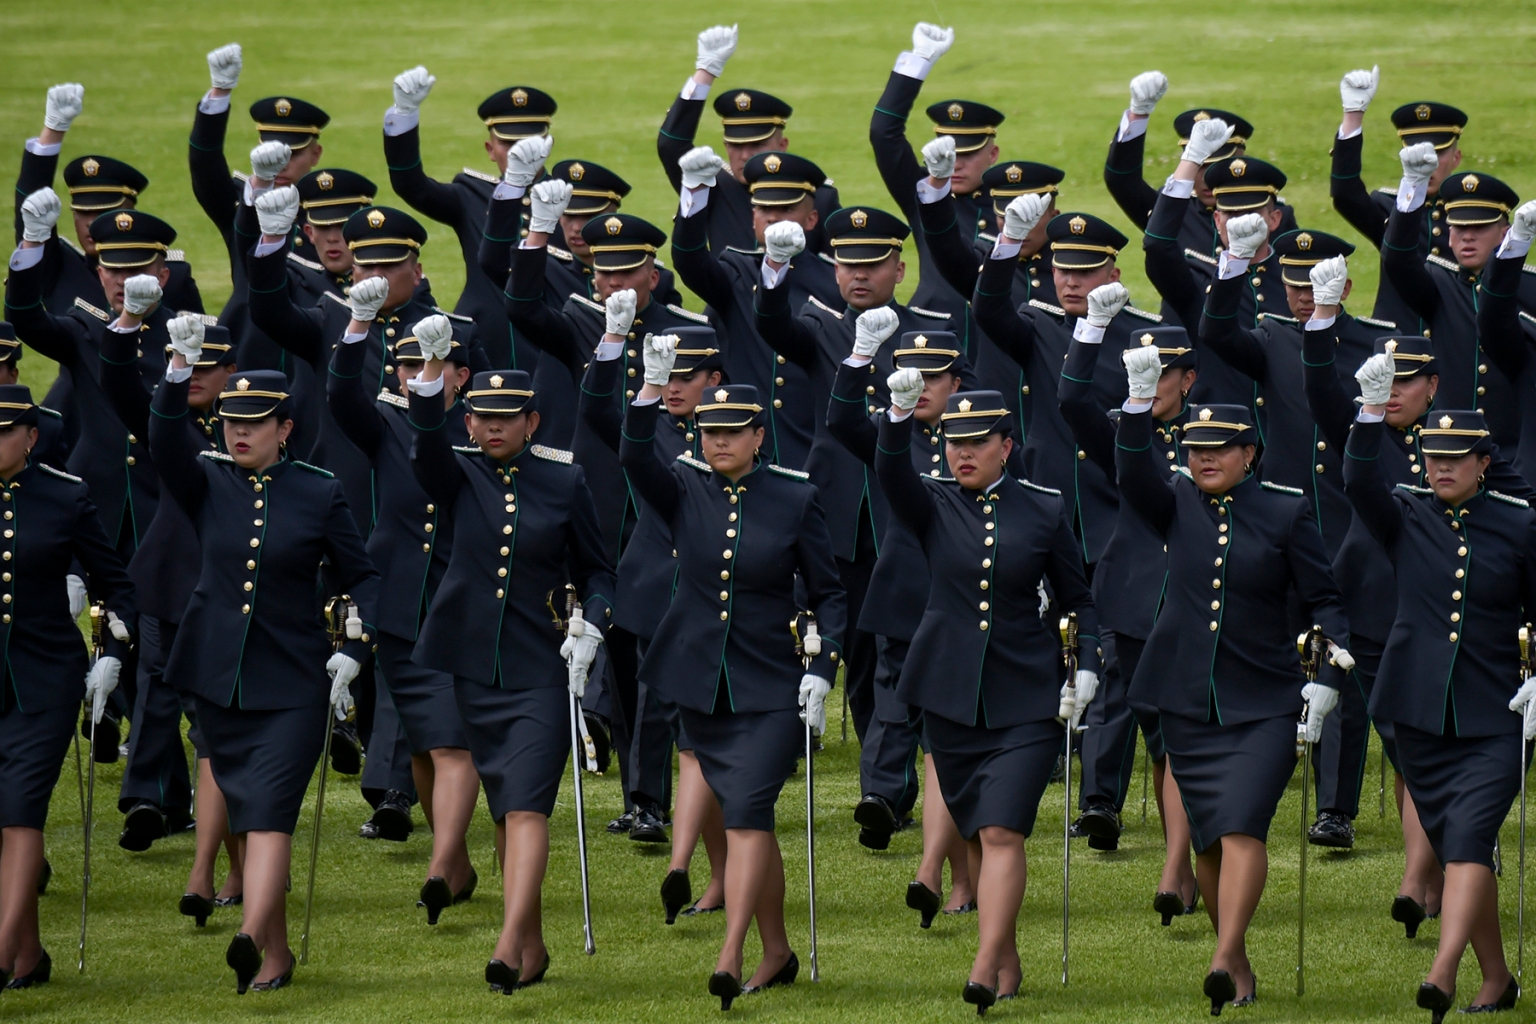 Newly graduated police officers attend the 127th anniversary of the Colombian Police at the General Santander police school in Bogota on Nov. 6. RAUL ARBOLEDA/AFP/Getty Images